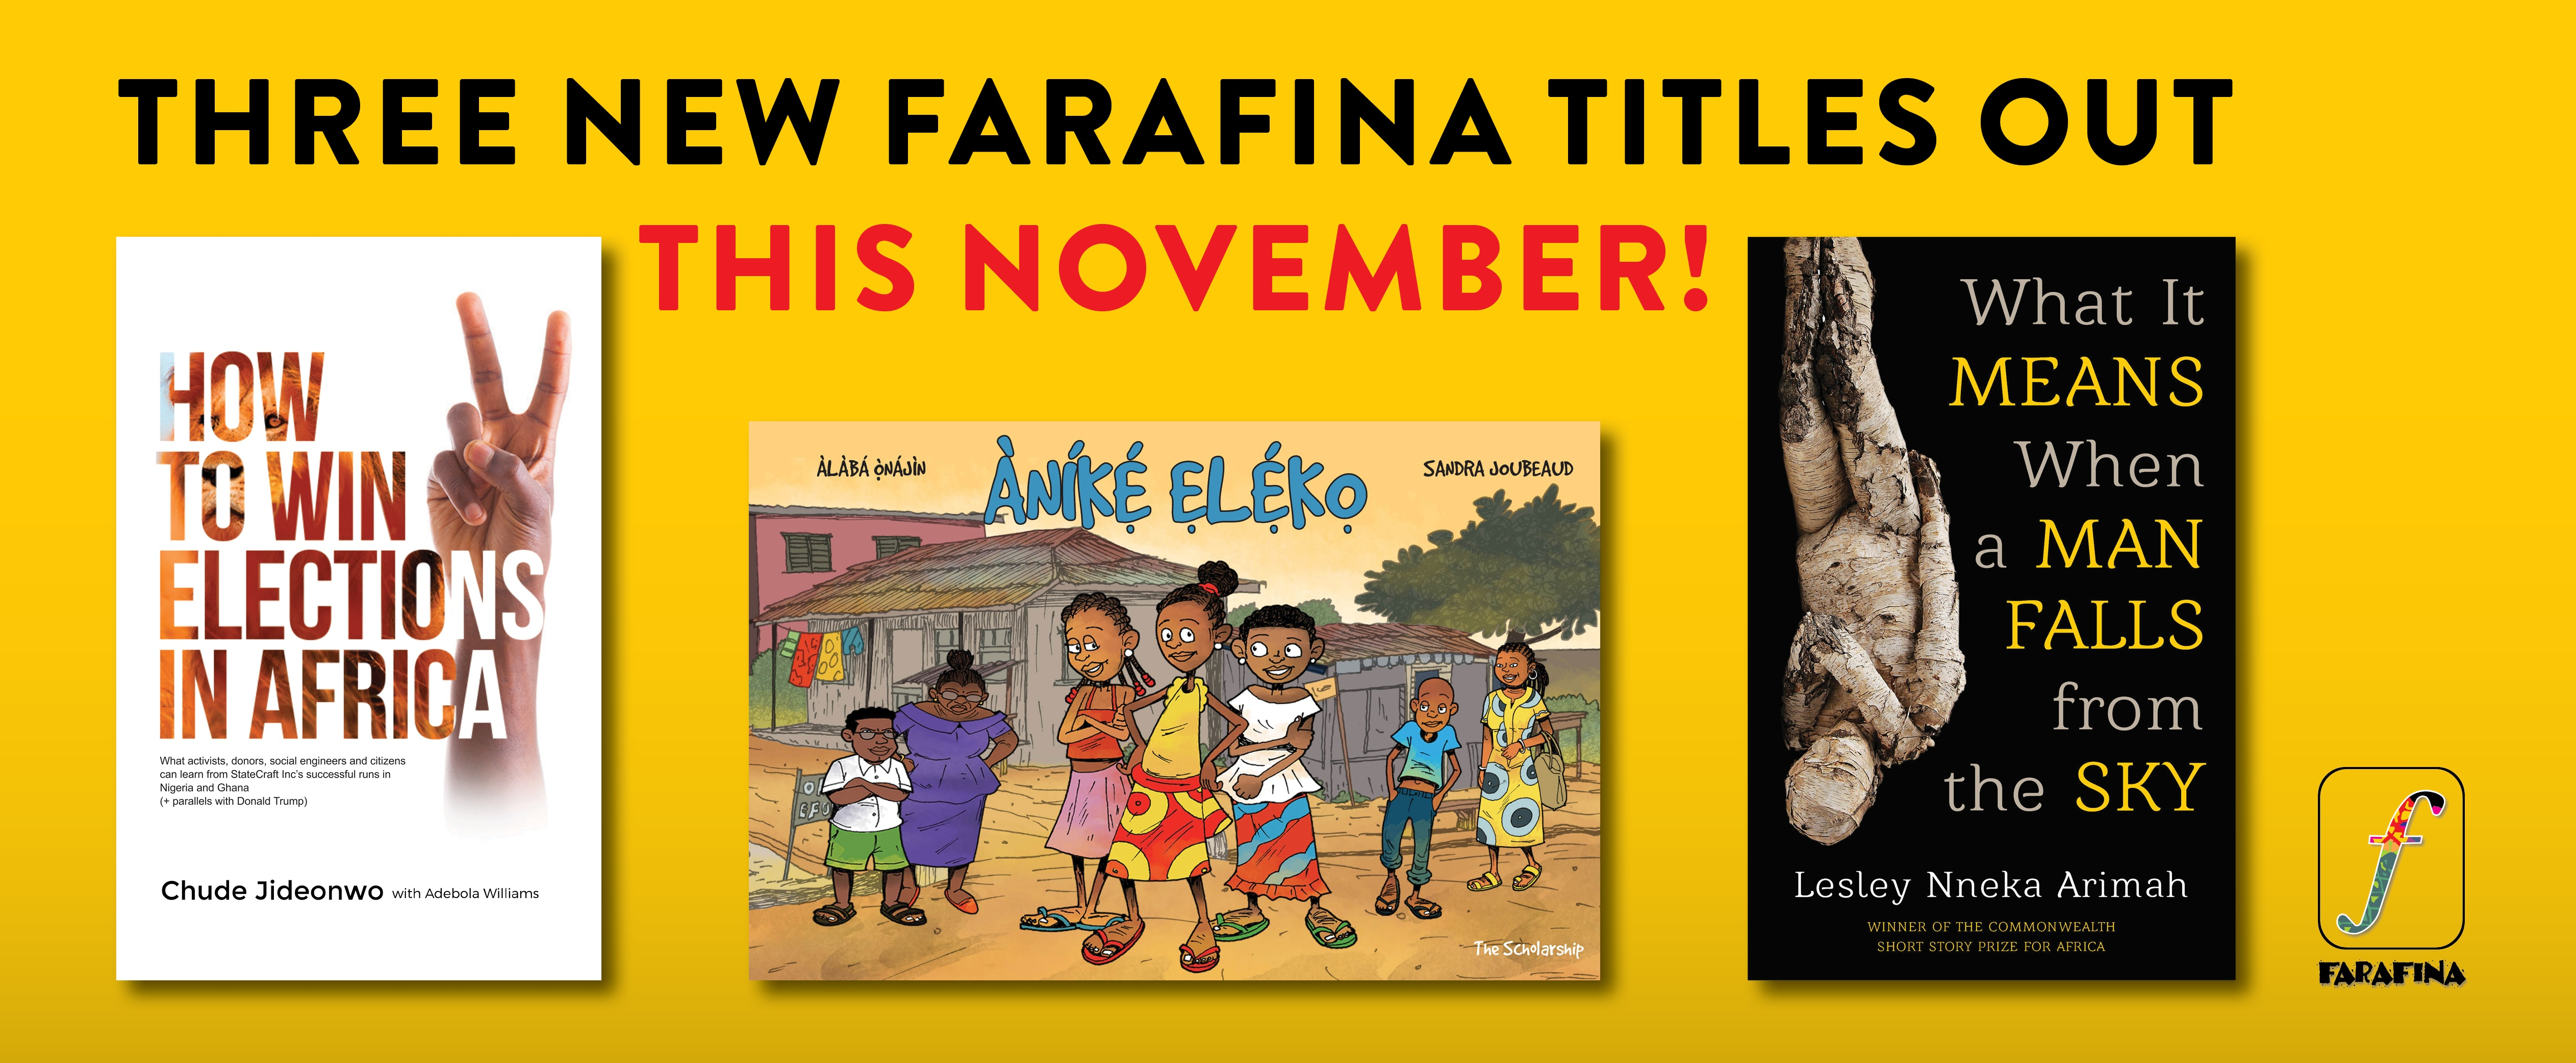 Farafina Books Releases Three New Titles This November